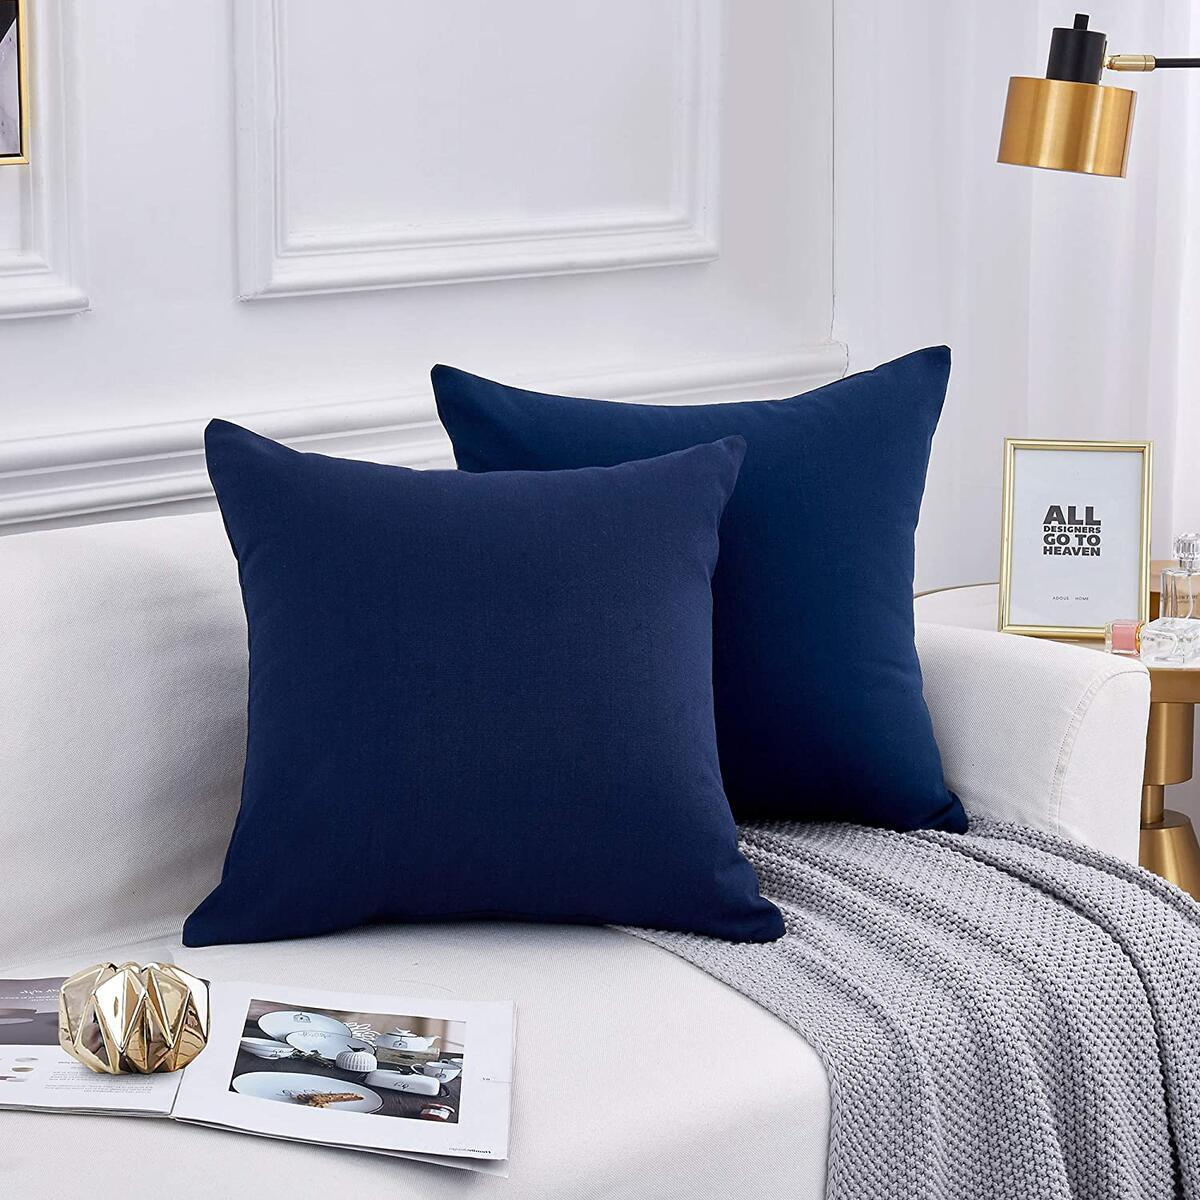 Leeden Navy Dark Blue Throw Pillow Covers 18 x 18 Linen Like Pillowcases Cushions Case for Couch Sofa Bed Outdoor Patio Bistro Chair Seat Square Set of 2, 18x18 inch(45x45cm)